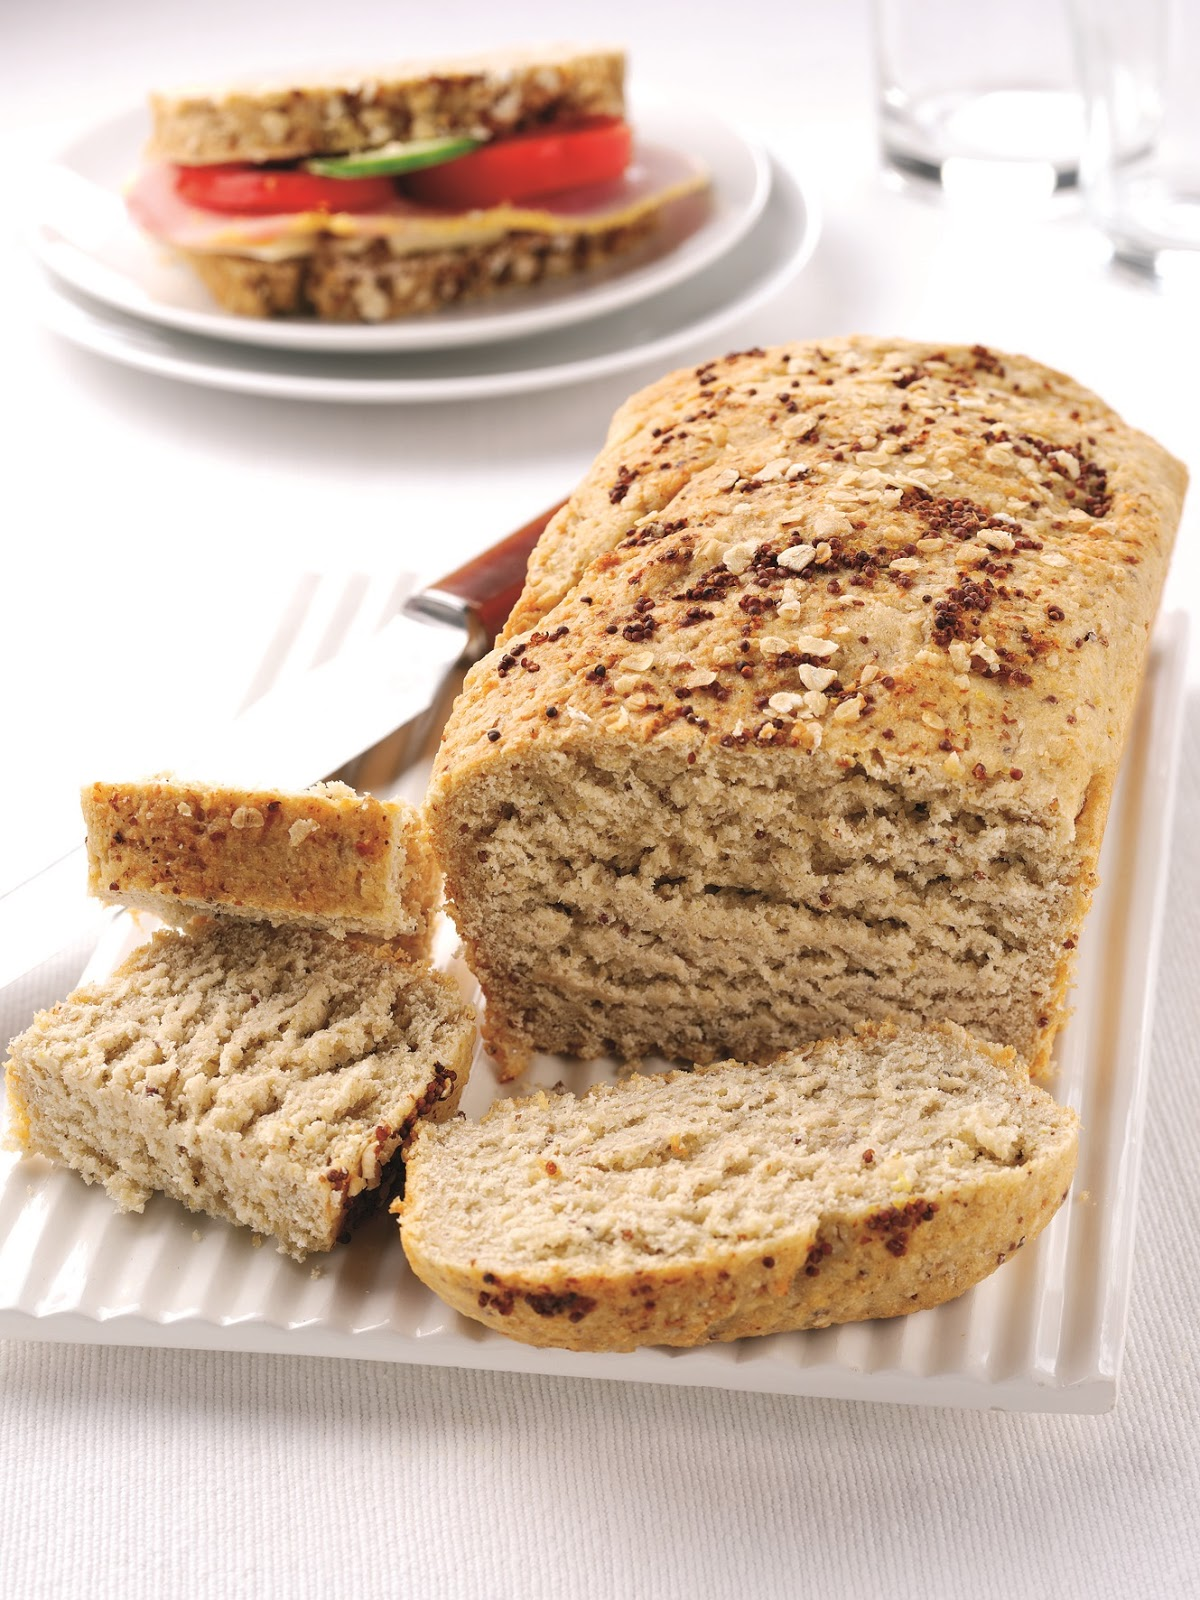 Cheddar And Grainy Mustard Oat Bread Recipe